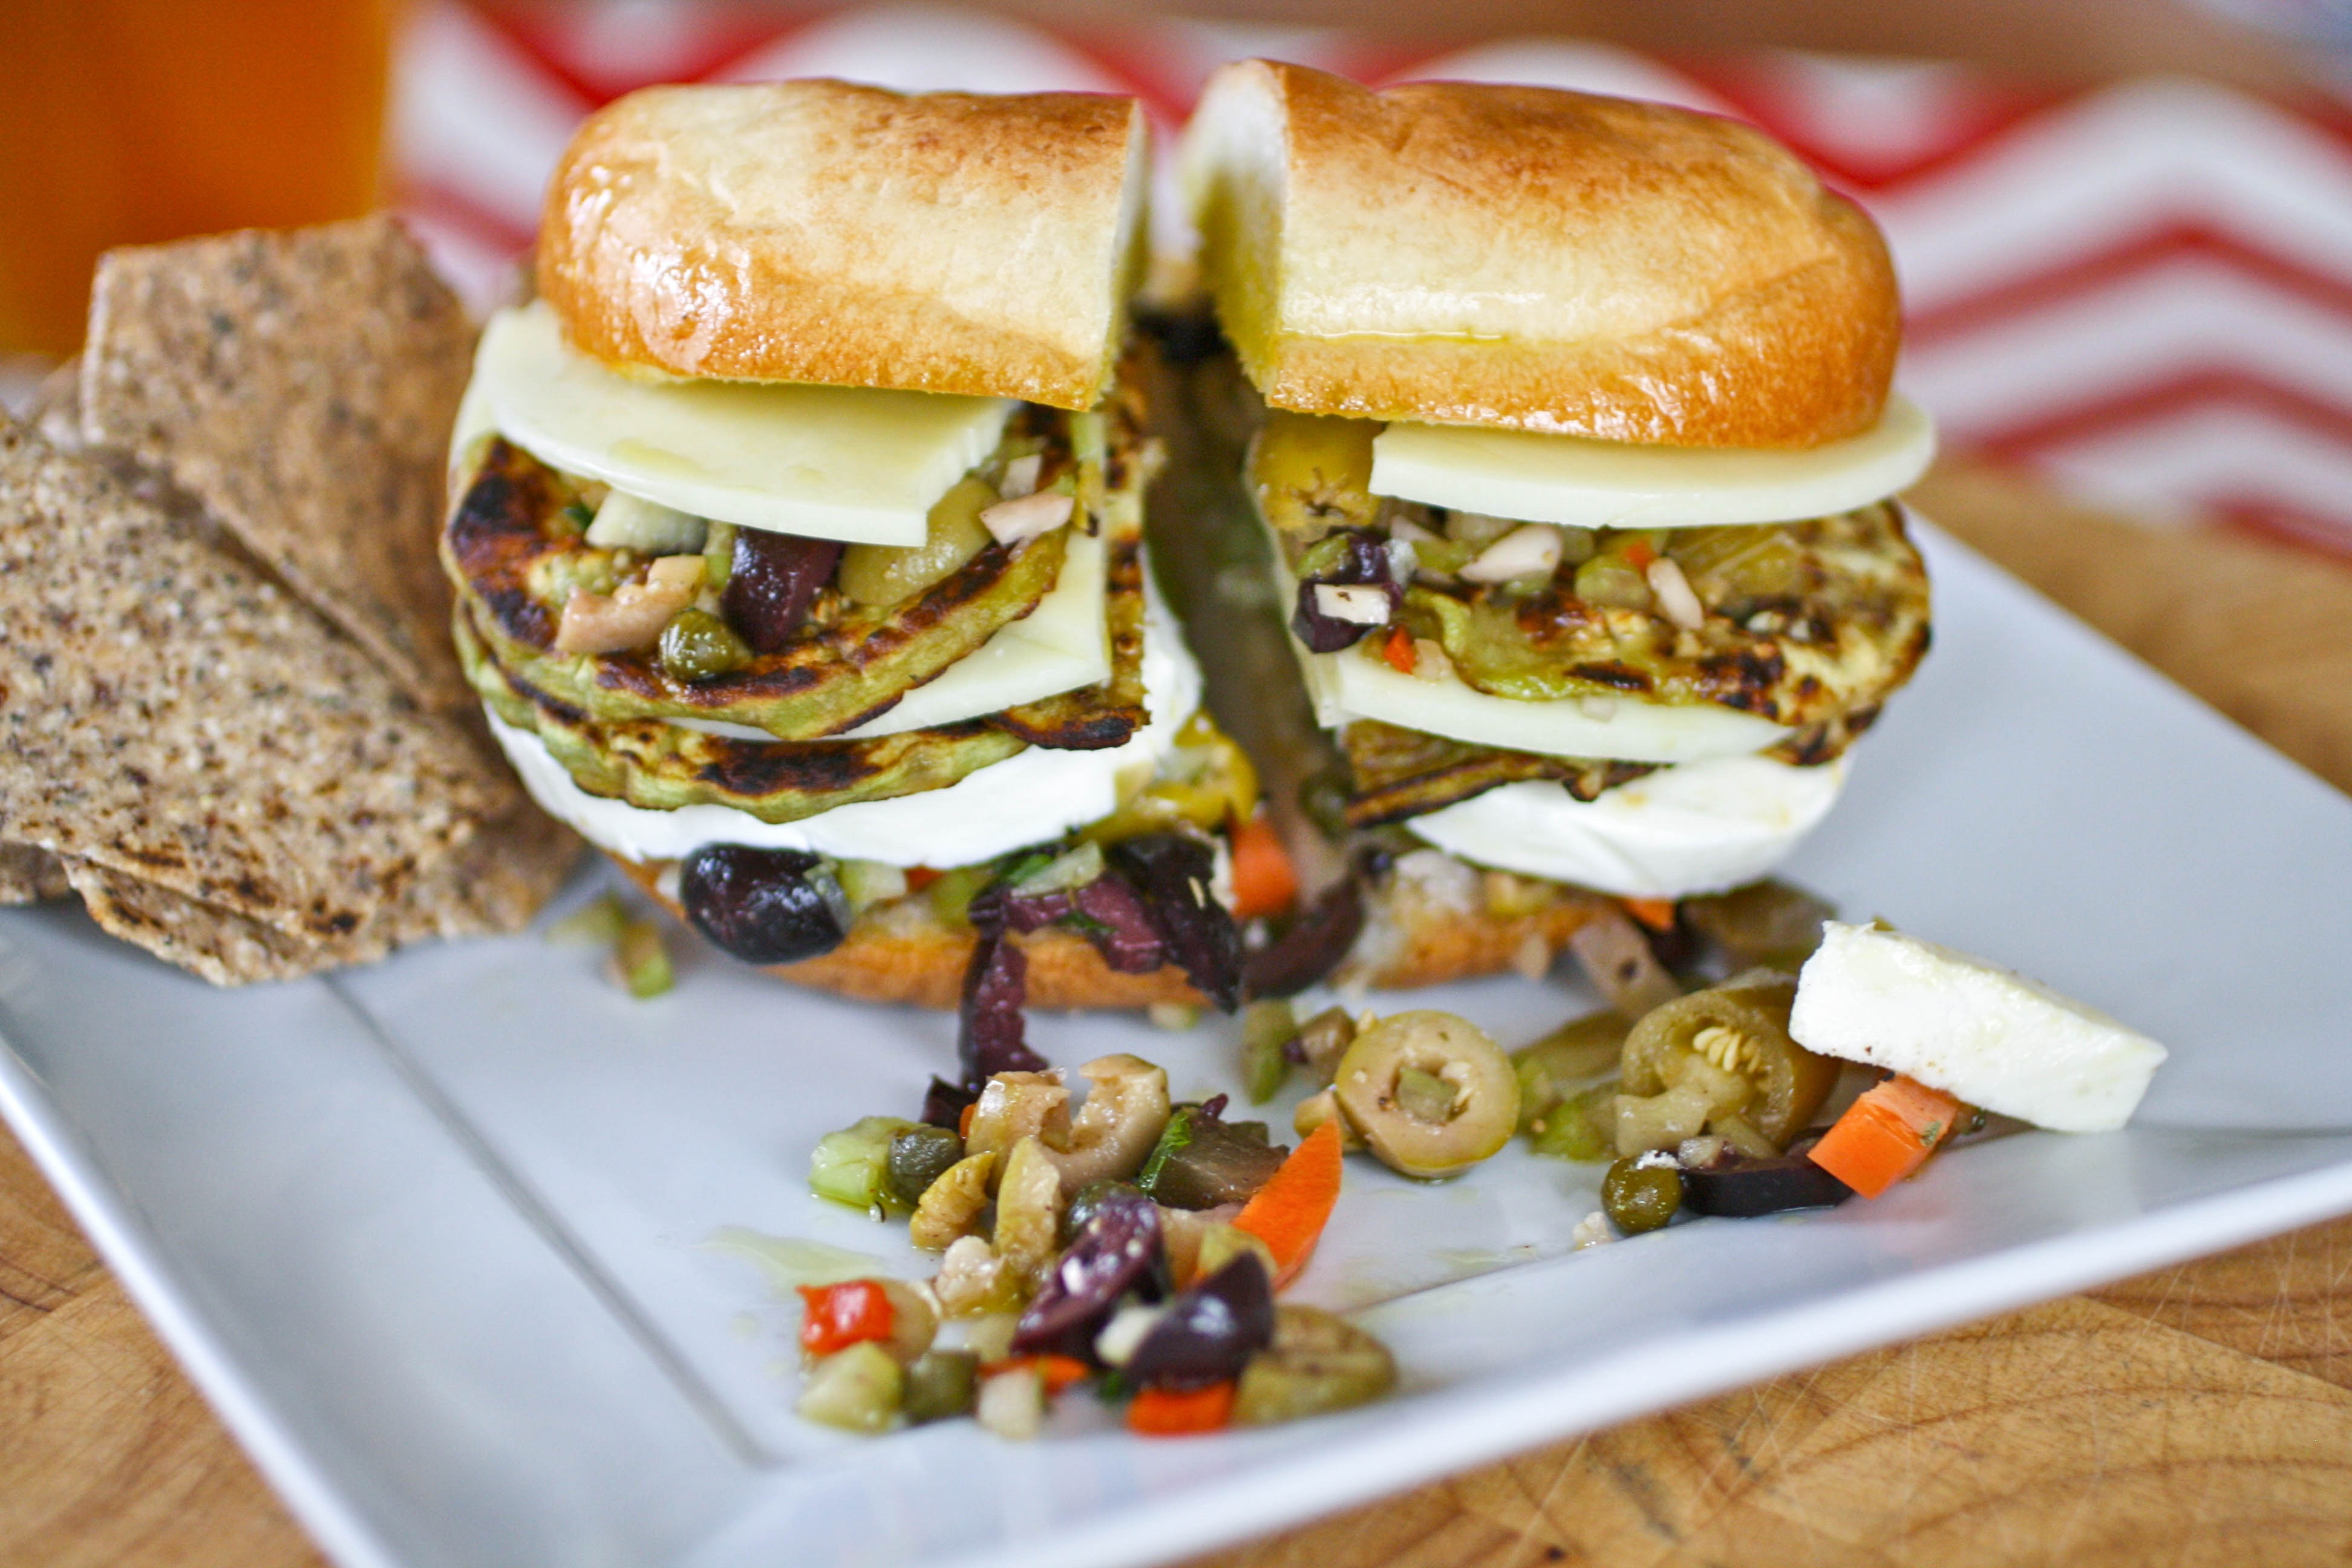 Eggplant Muffuletta Sandwiches are a meatless version of the classic. You'll love these eggplant muffuletta sandwiches for a hearty, meatless meal.